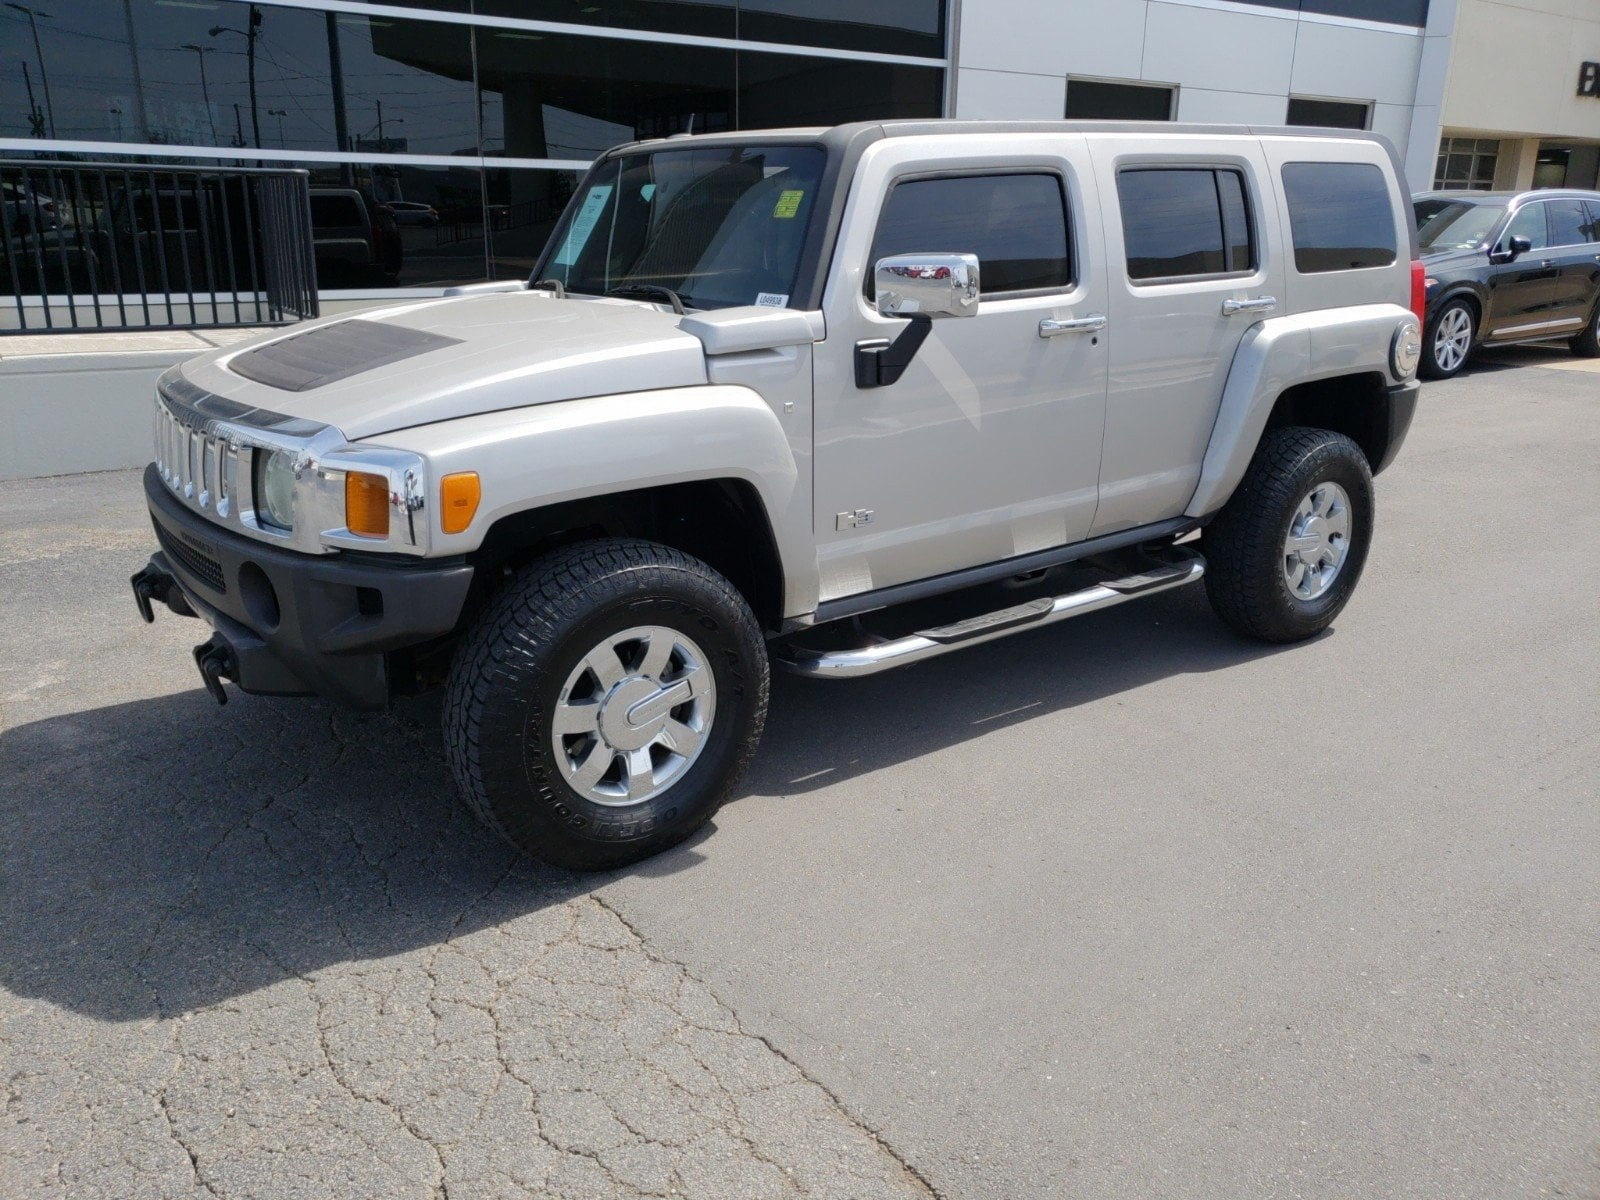 2006 Hummer H3 Parts Diagrams Used 2006 Hummer H3 Suv for Sale Tulsa Ok Of 2006 Hummer H3 Parts Diagrams